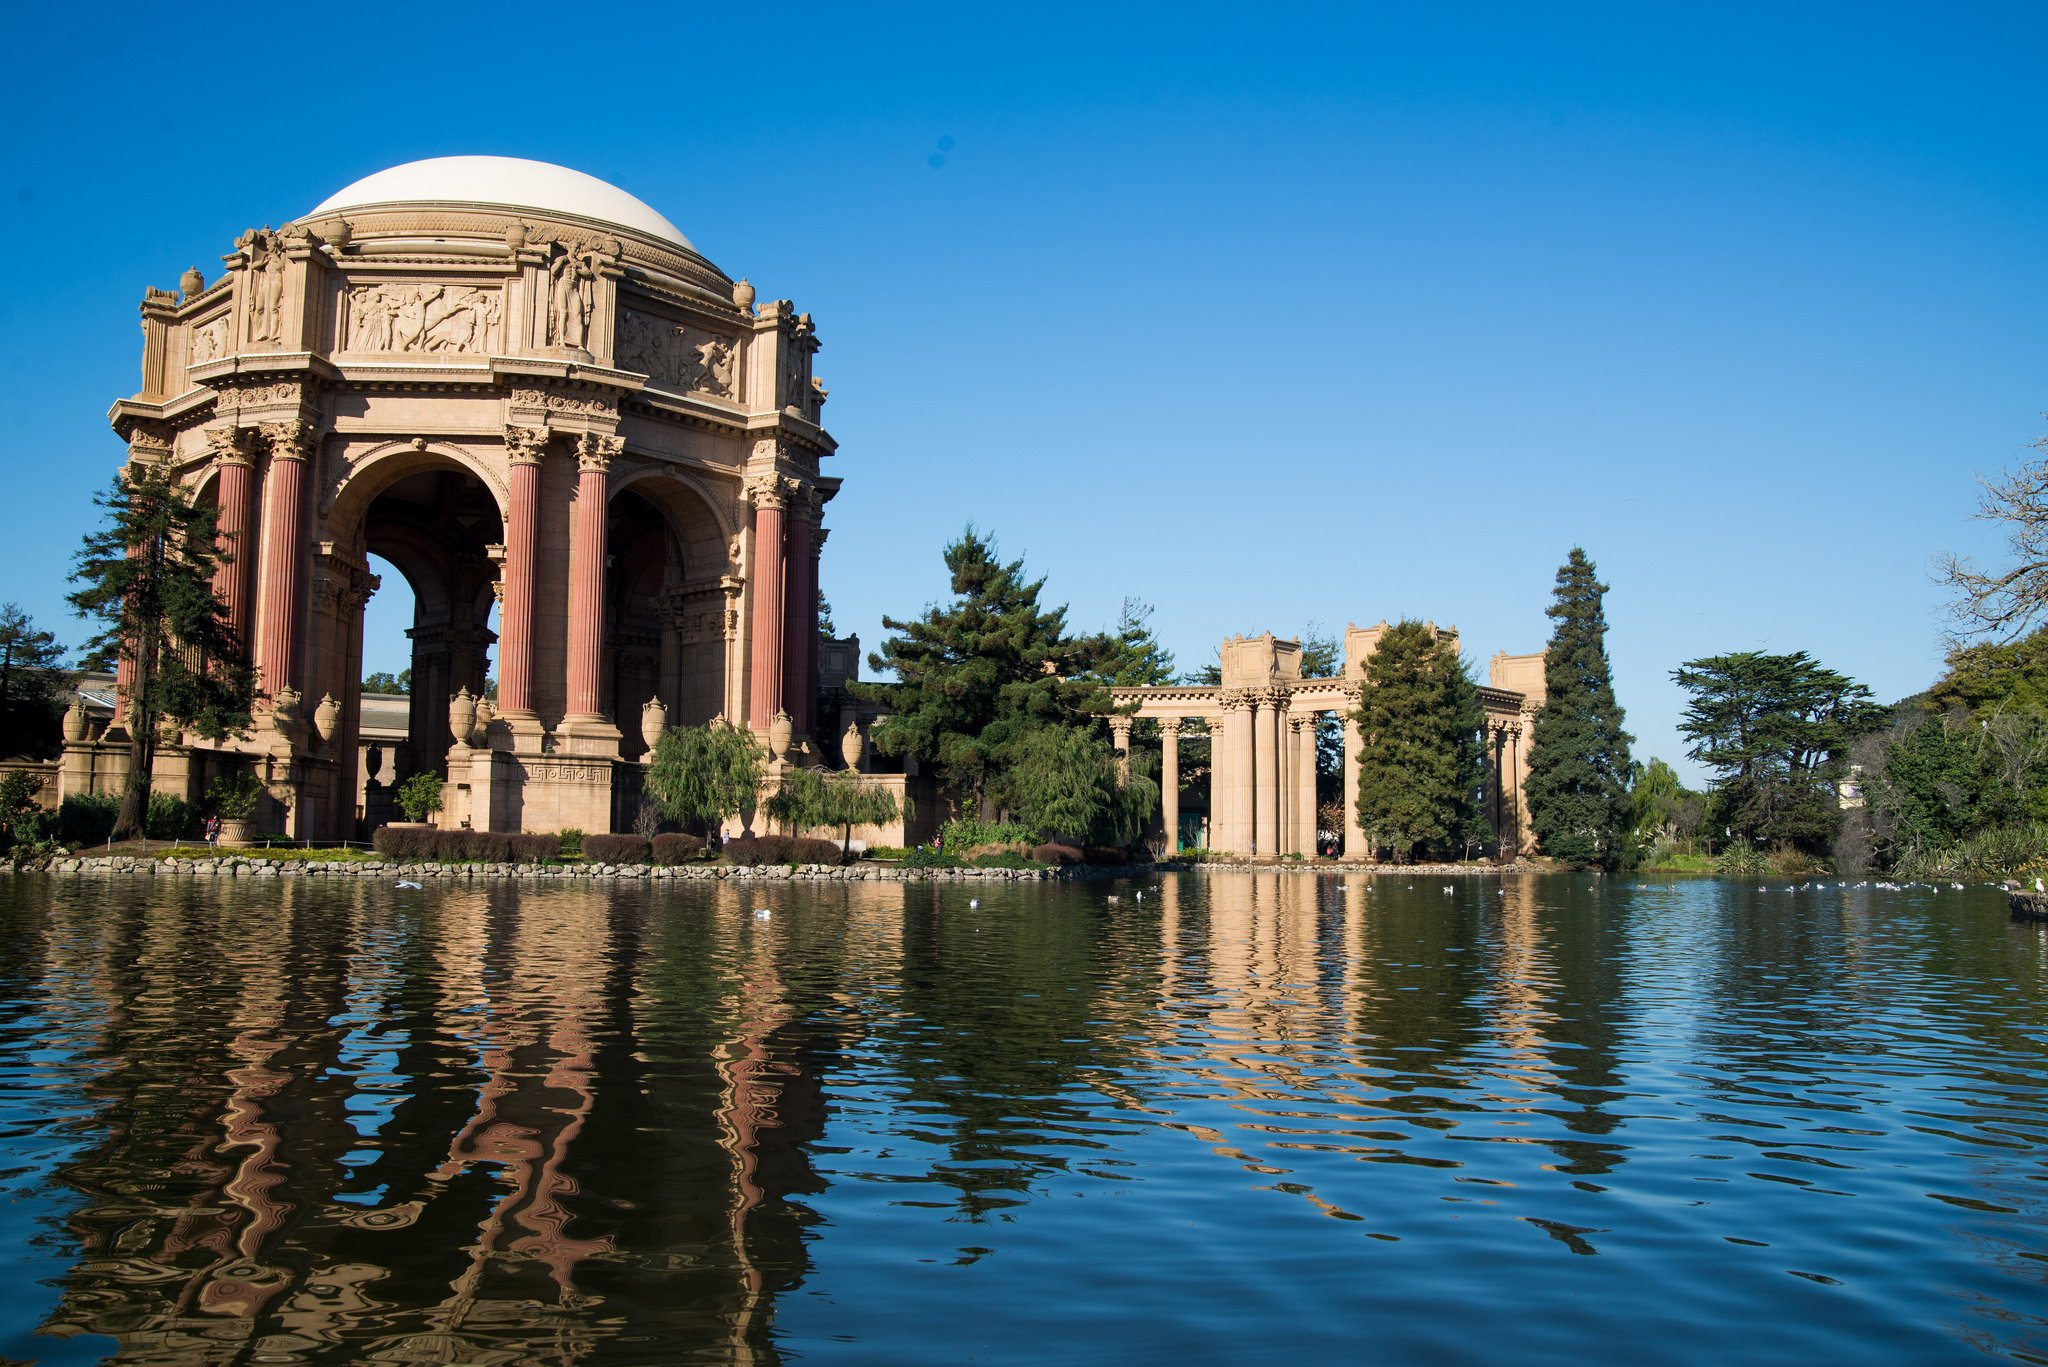 17 Easy Ways to Save Money on Your Next Trip - Palace of Fine Arts, San Francisco, California, USA